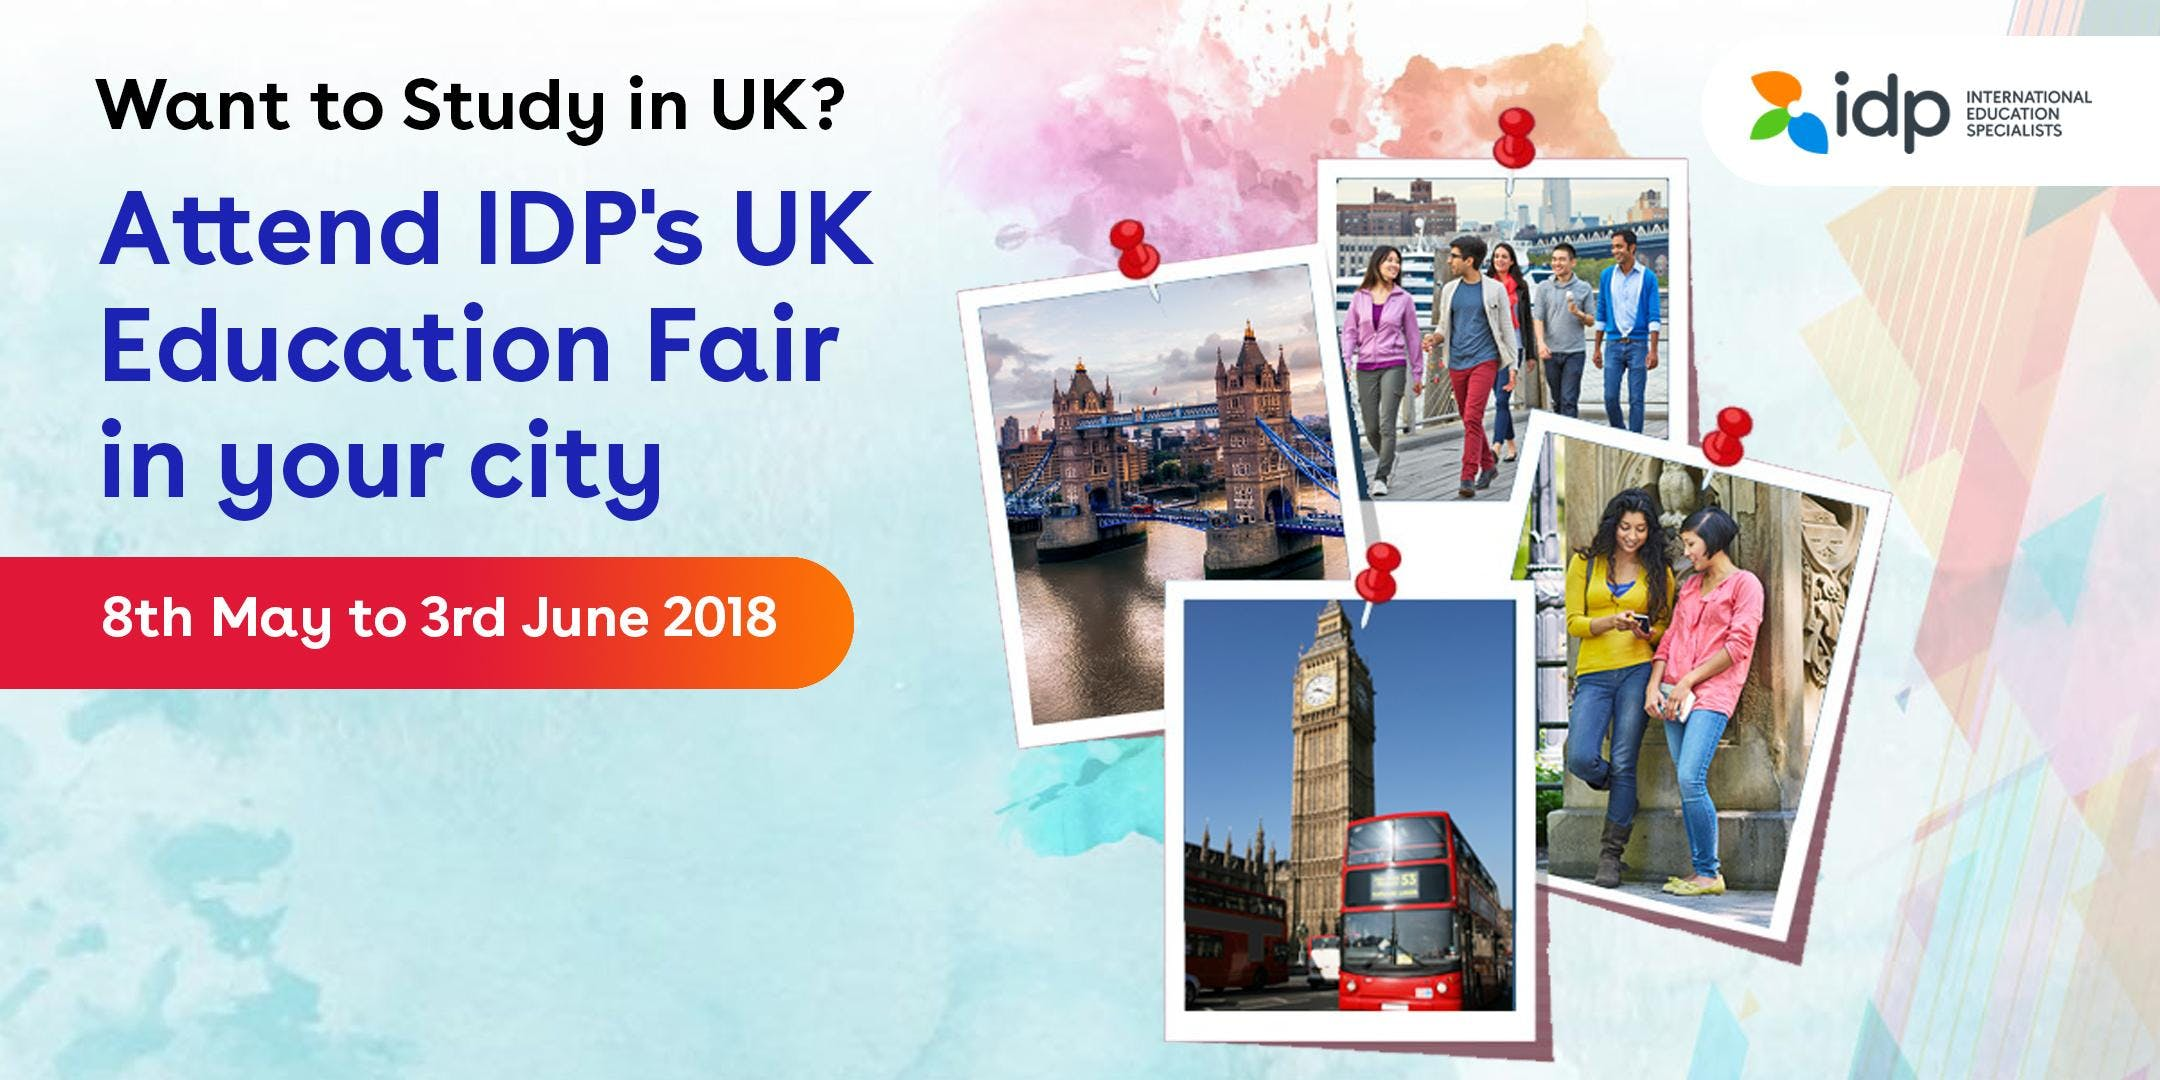 Attend IDPs UK Education Fair in Ahmedabad (23rd May 2018)